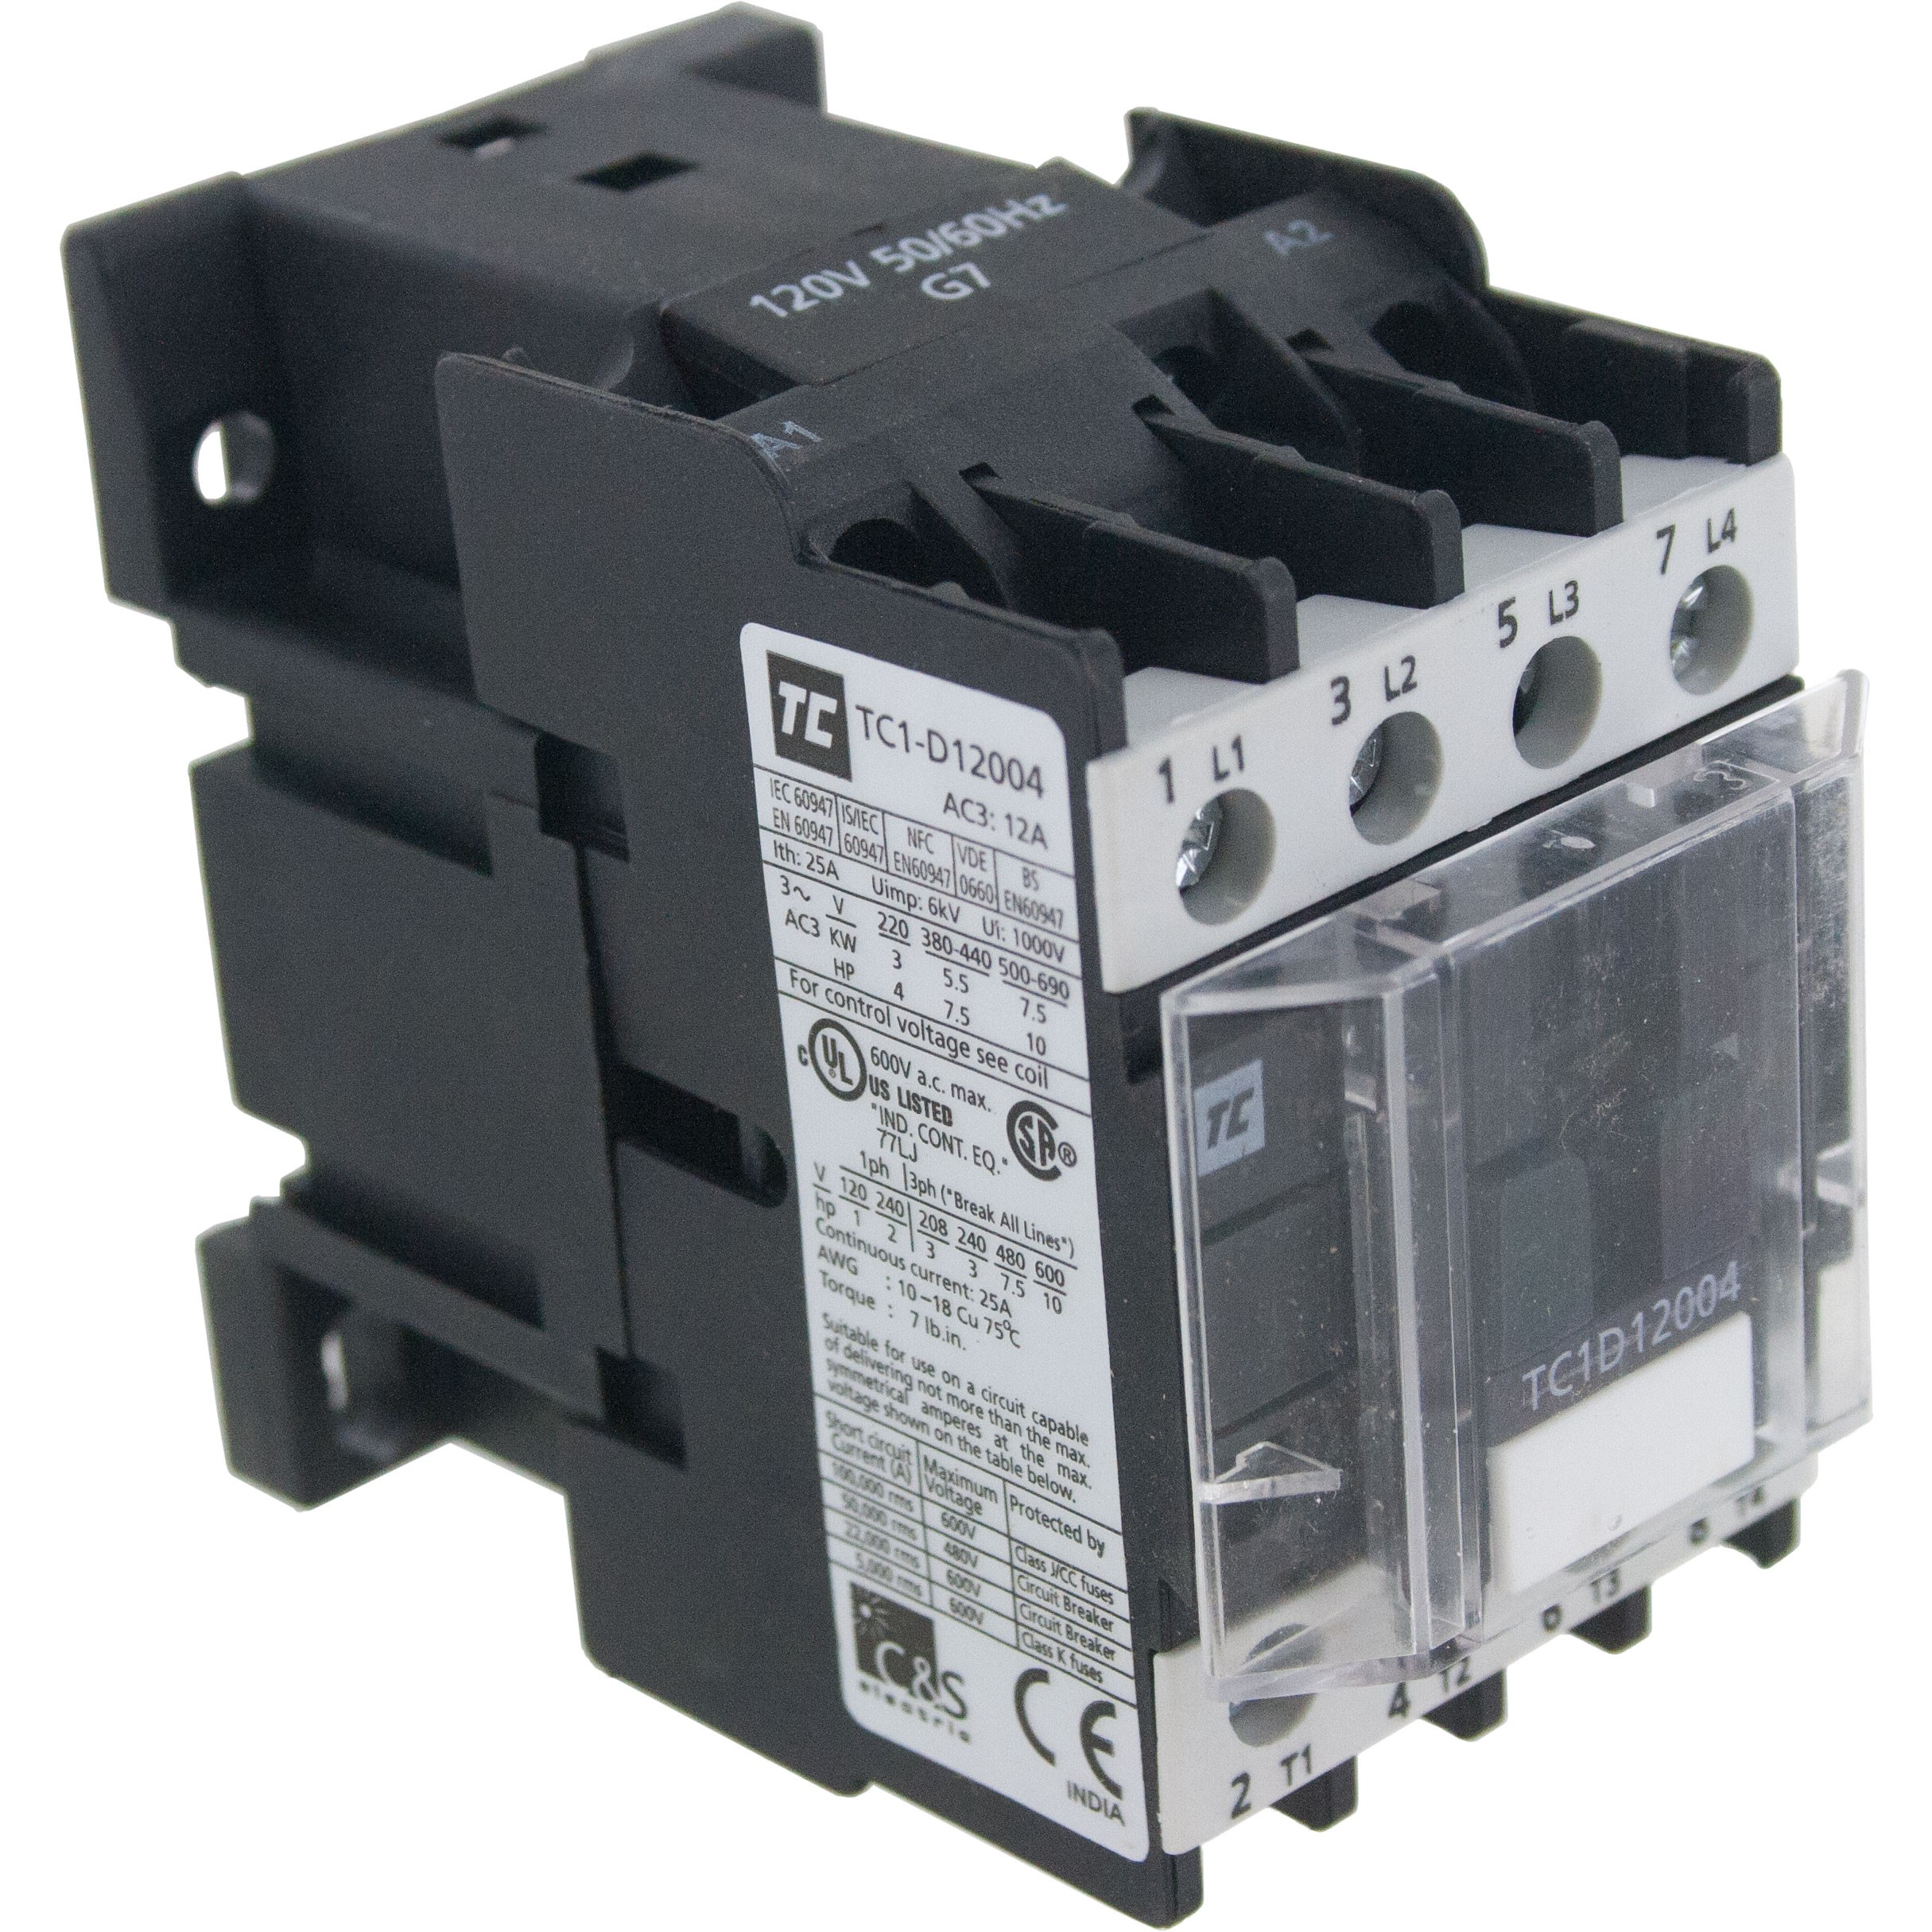 4 Pole Contactor 12 Amp 4 N/O 220 Volt AC Coil Angle